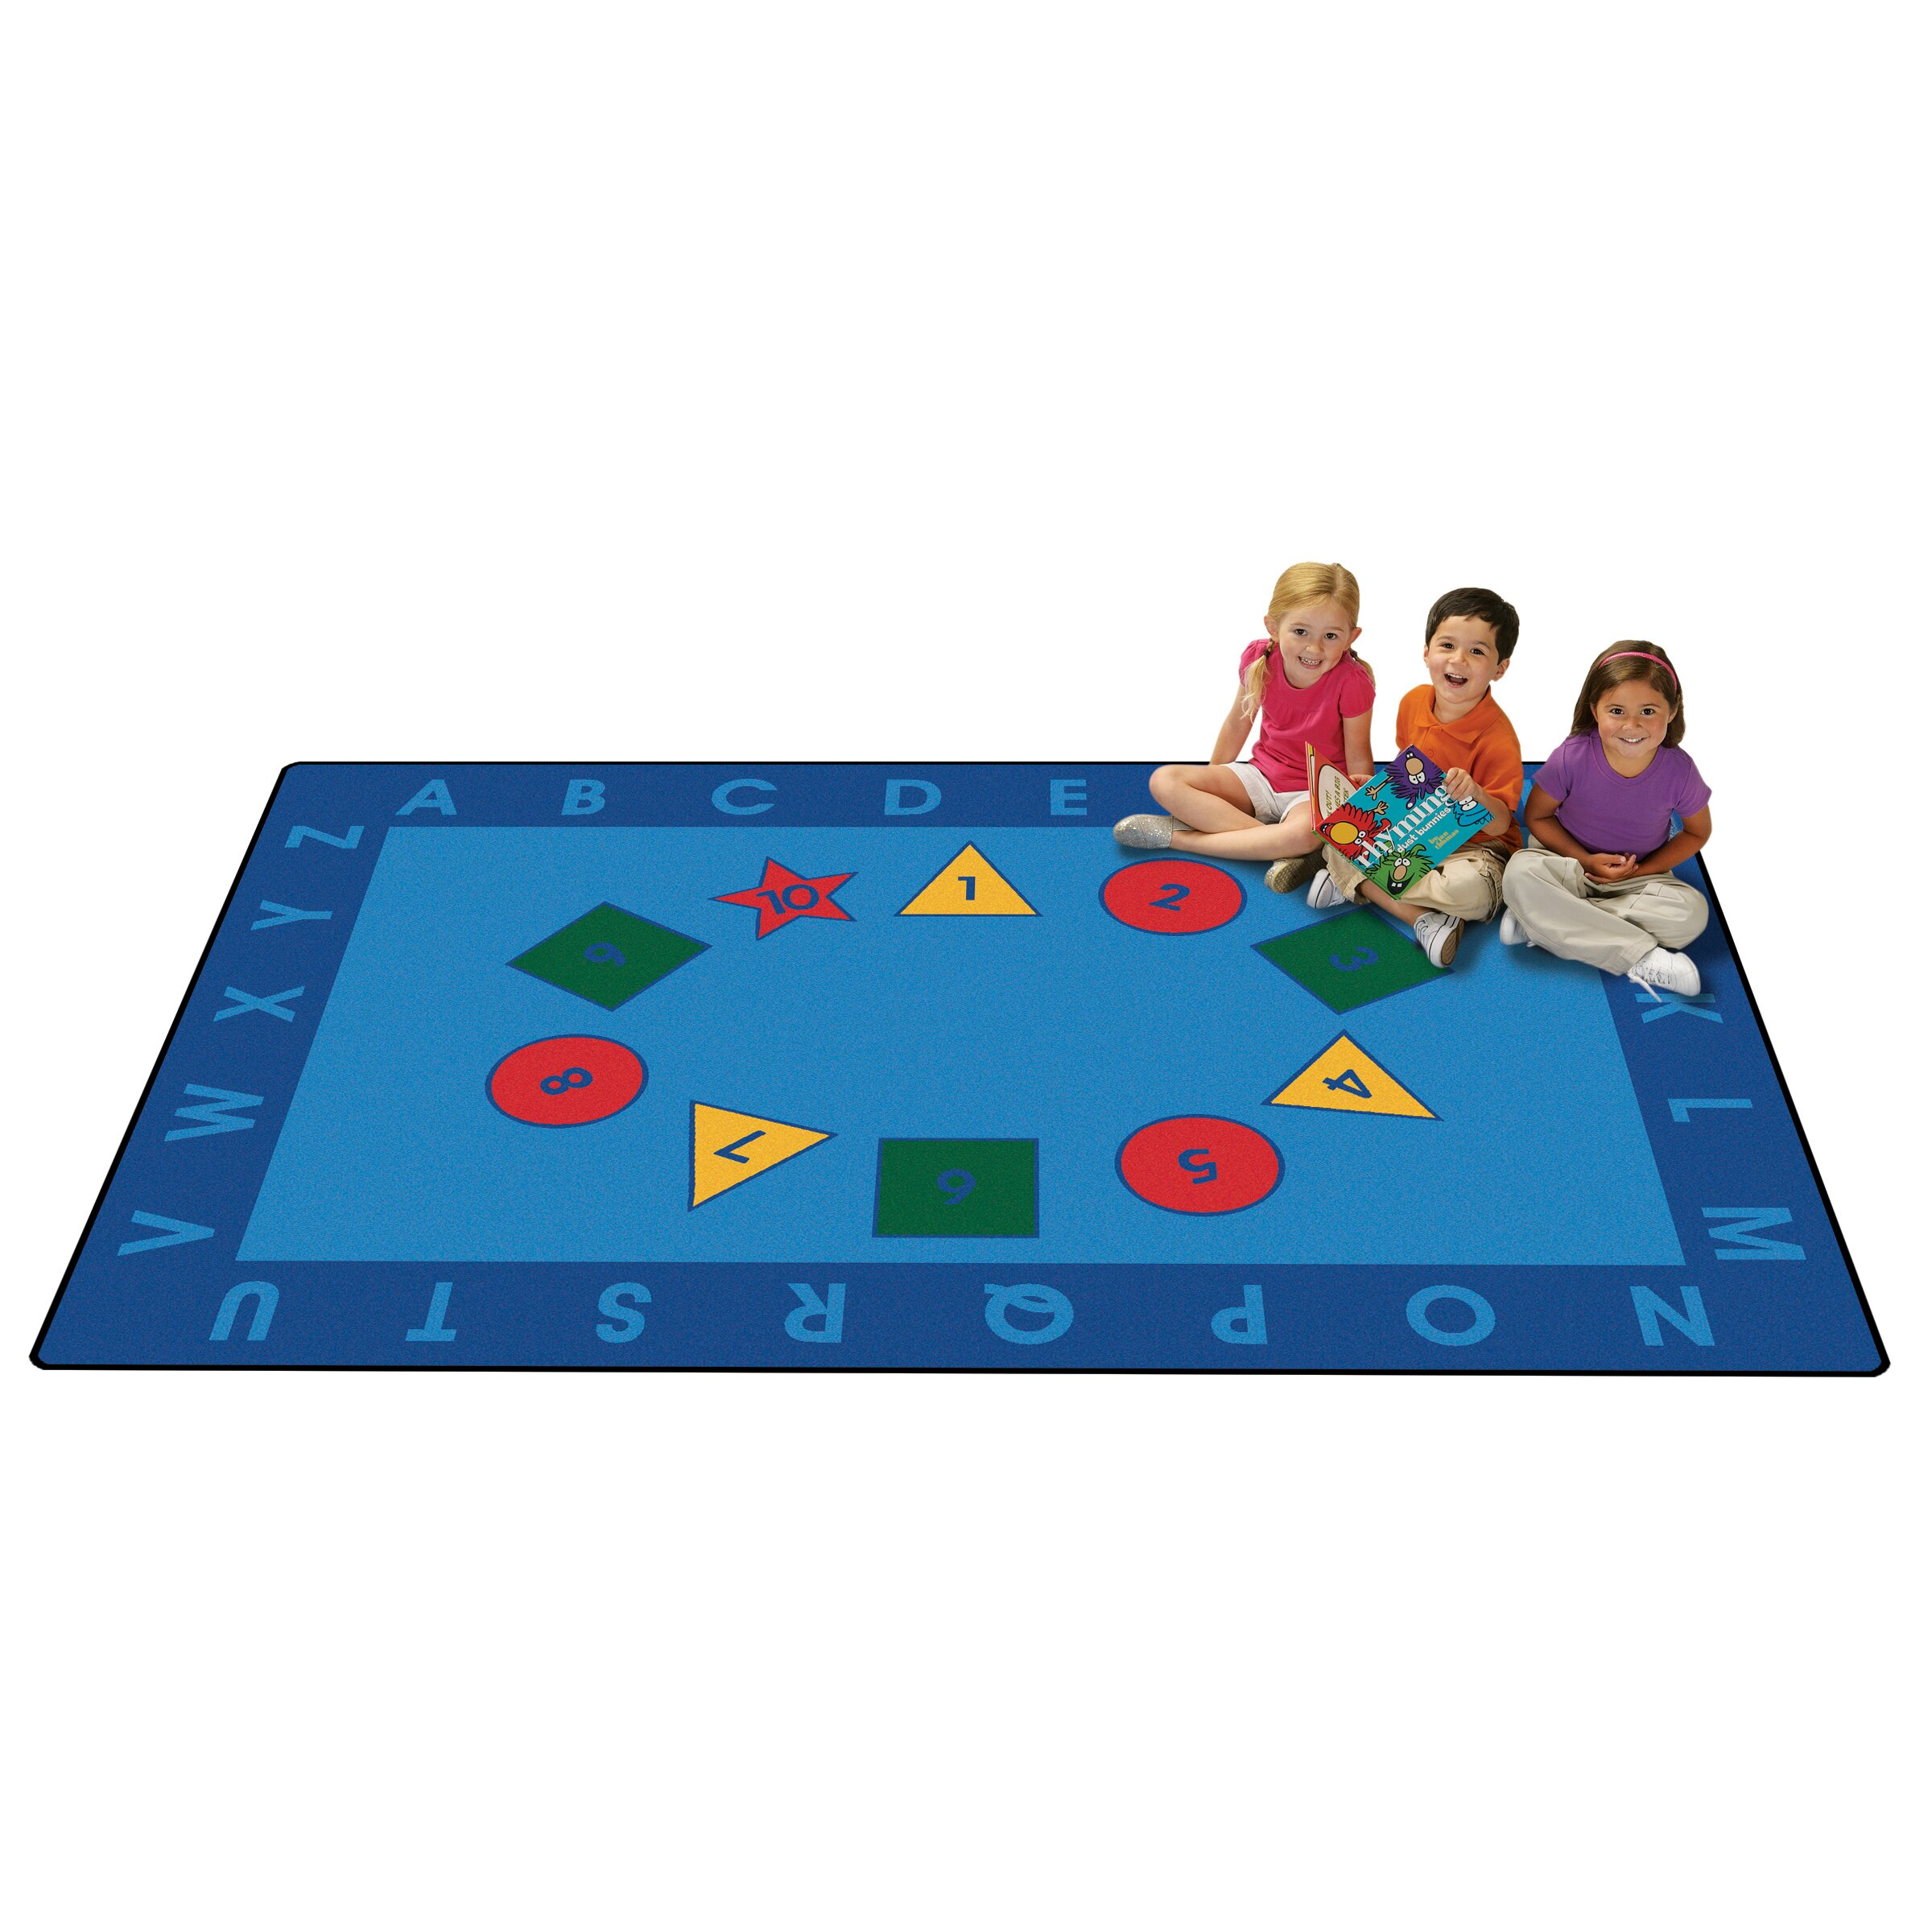 Learning Rug: Carpets For Kids Value Plus Early Learning Area Rug